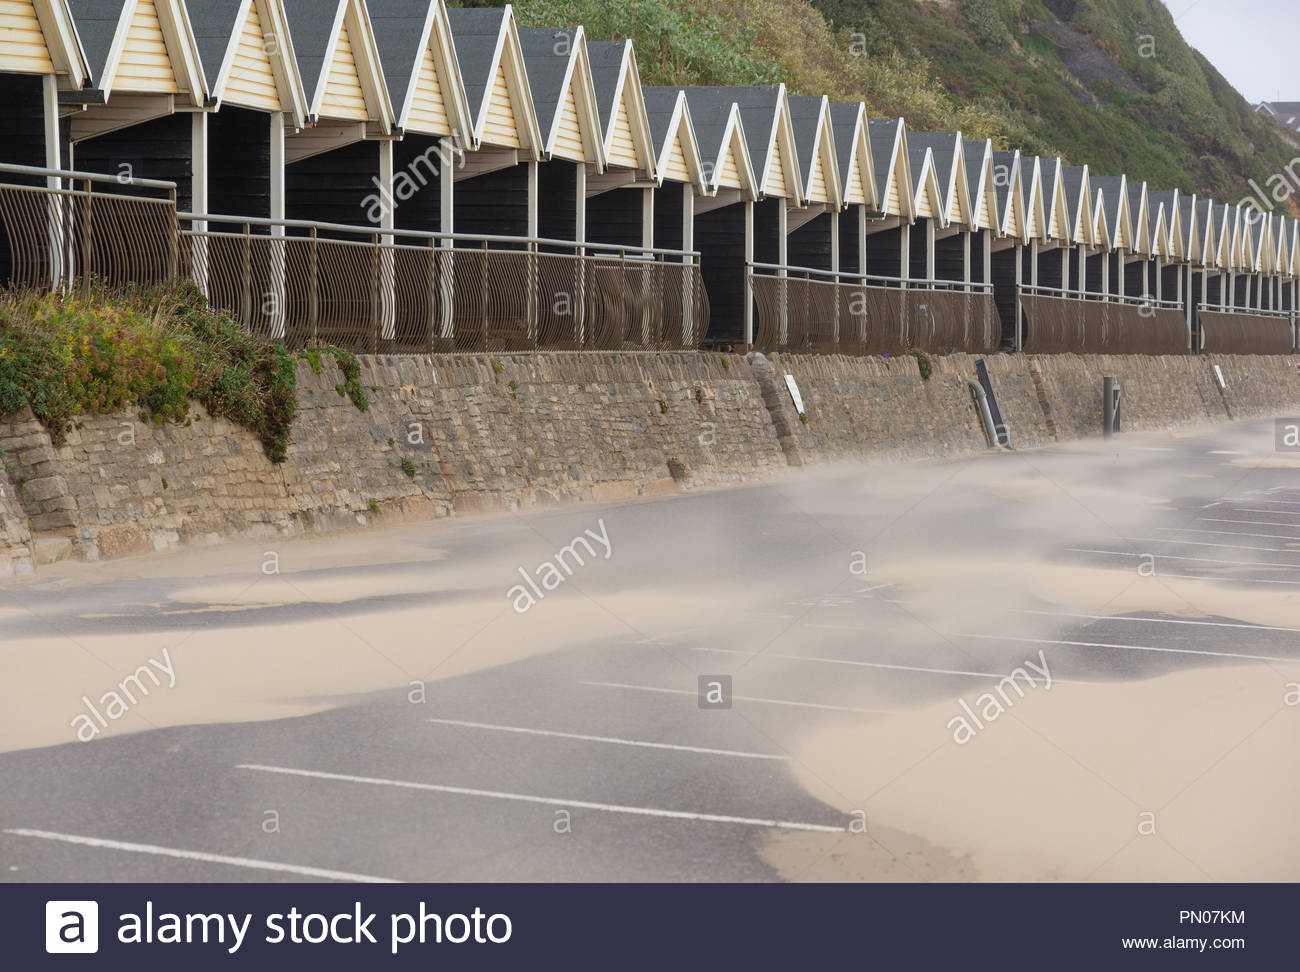 Cream sandy coloured beach huts match the colour of the sand blown onto the promenade car park at Boscombe, Bournemouth, Dorset, UK - Stock Image